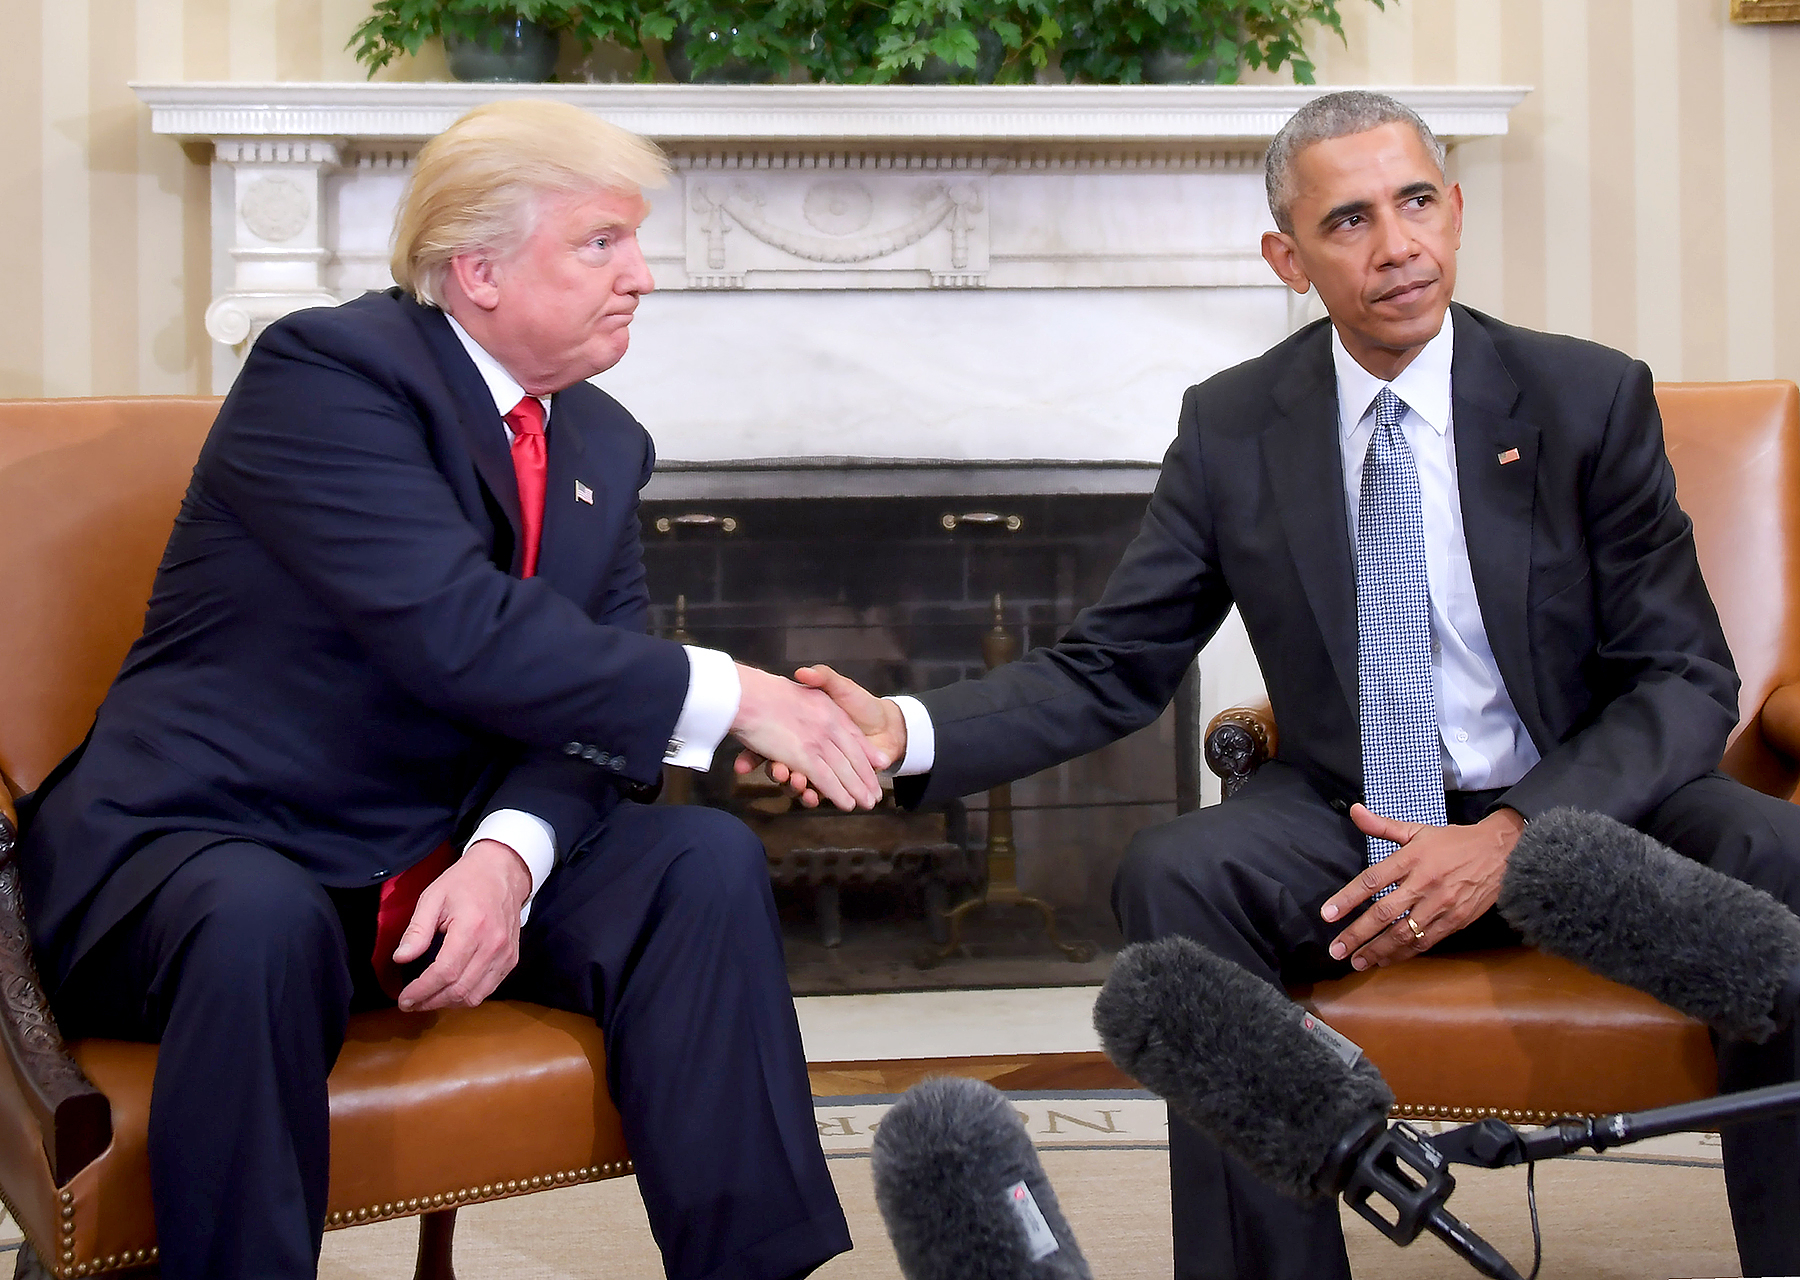 US President Barack Obama and President-elect Donald Trump shake hands during a transition planning meeting in the Oval Office at the White House on November 10, 2016 in Washington,DC.